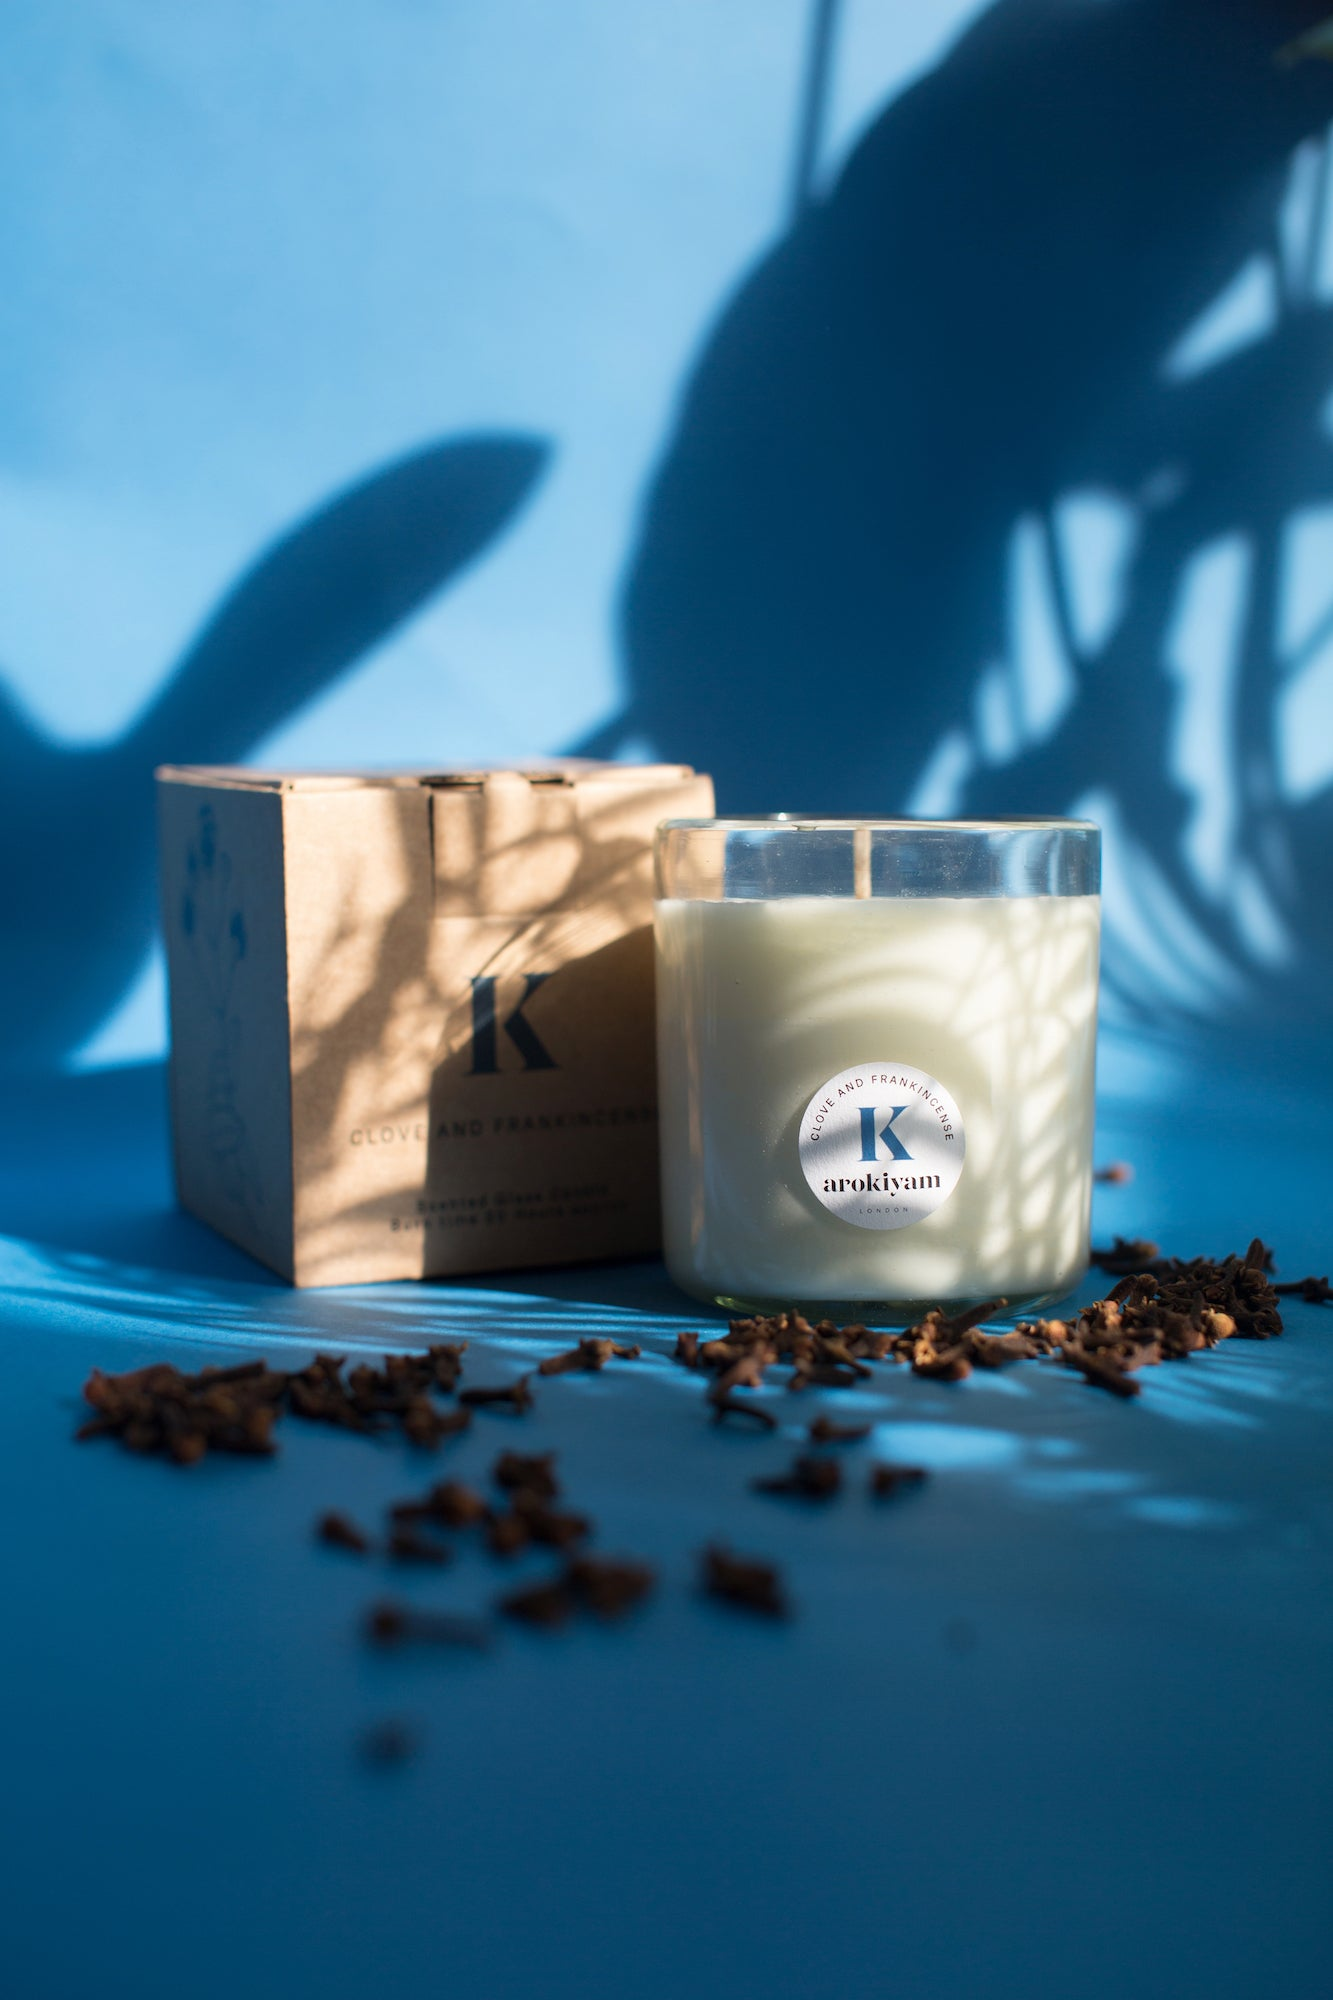 K | Clove and Frankincense Candle